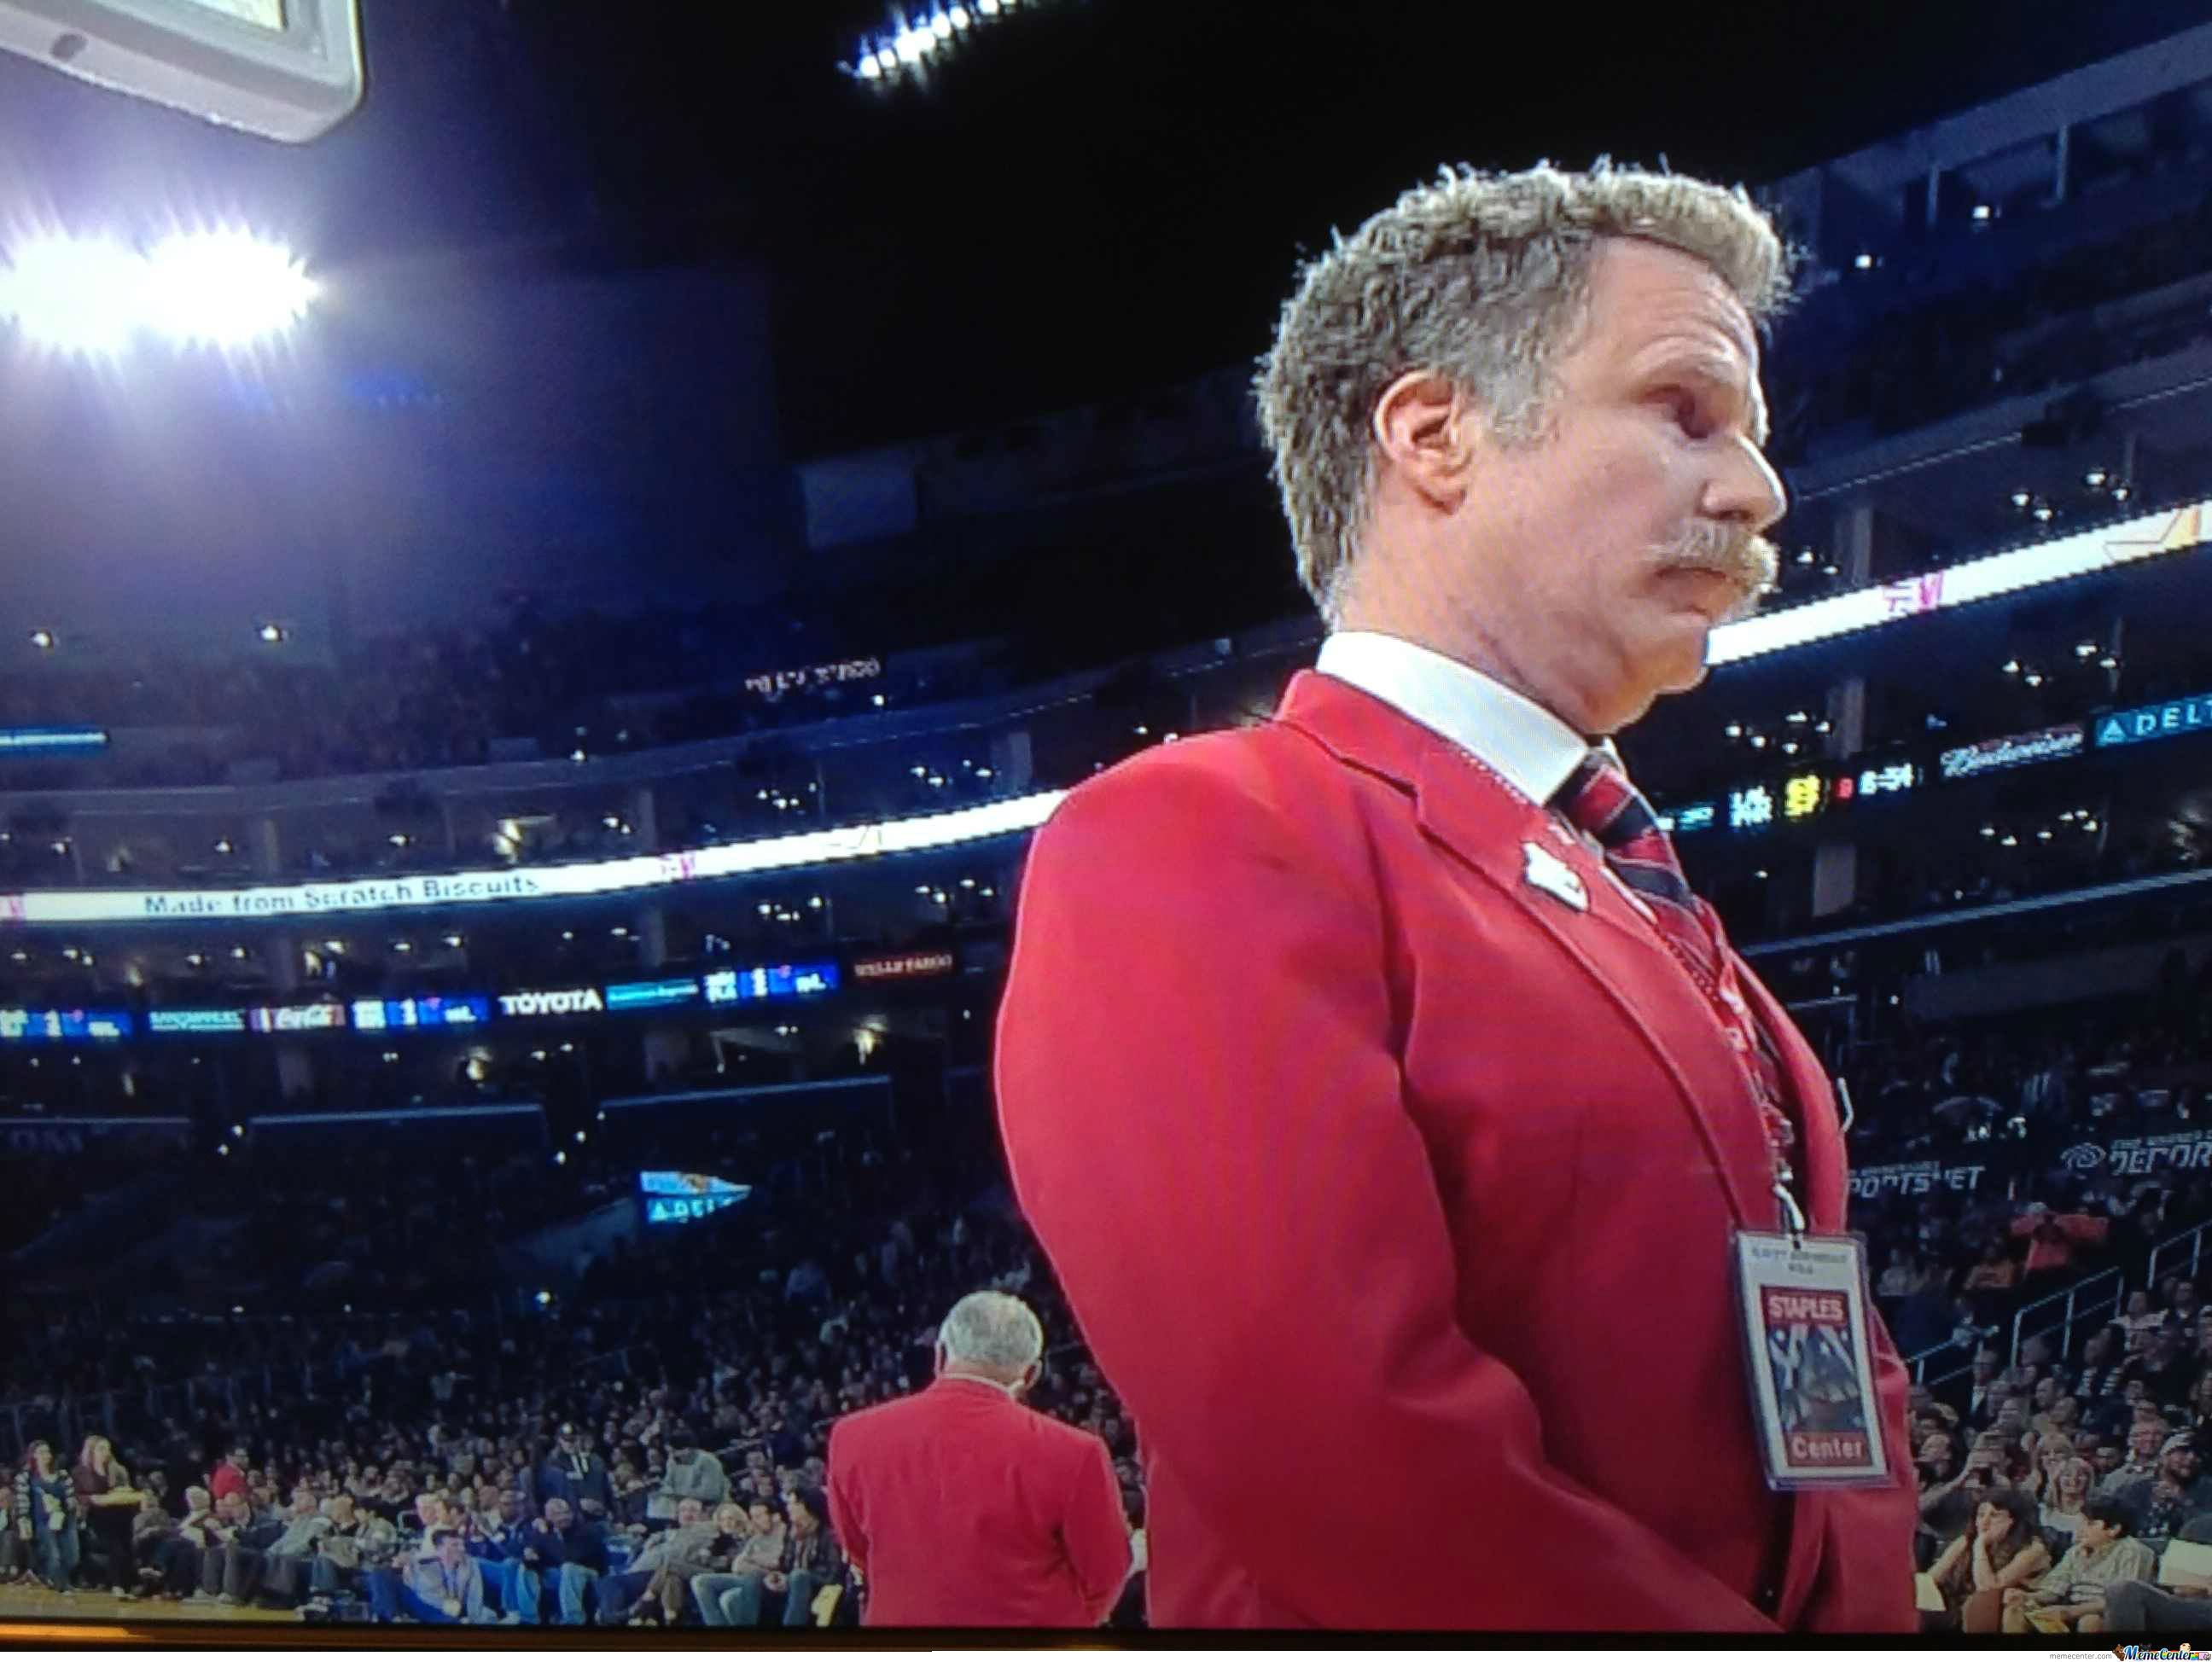 Just A Regular Security Guard At A Lakers Game....not Will Ferrell